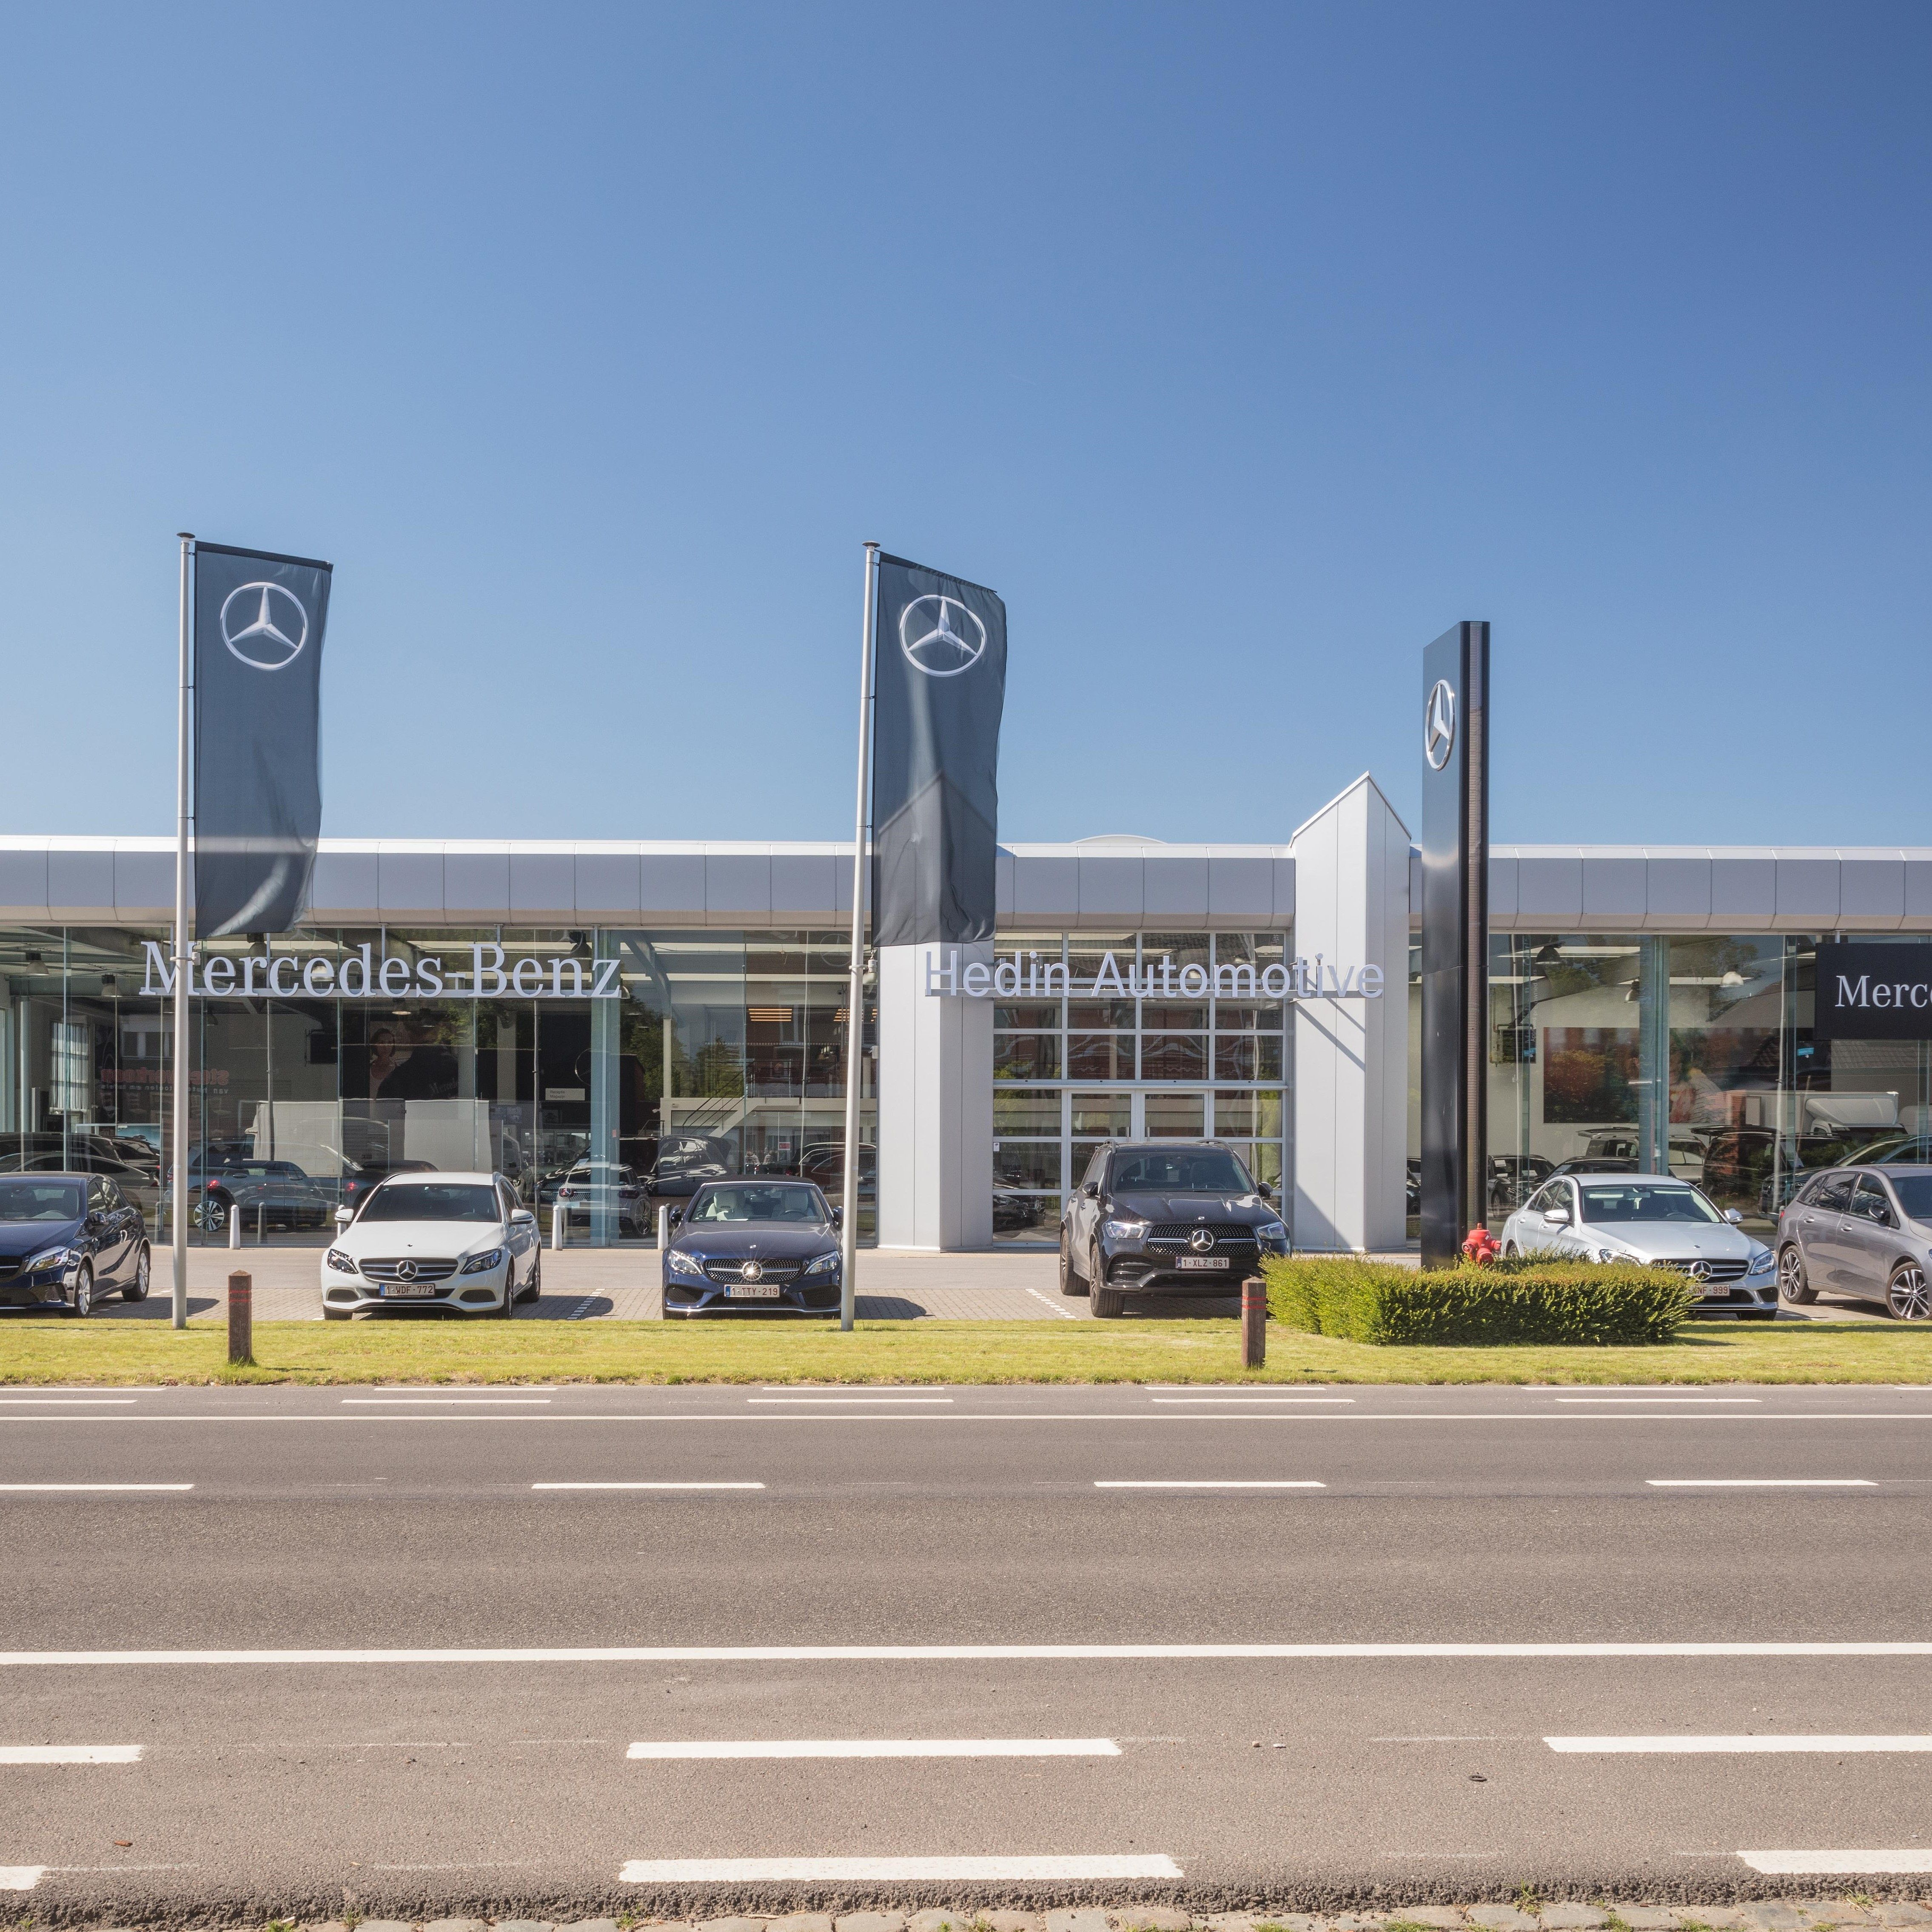 Hedin Automotive Boortmeerbeek